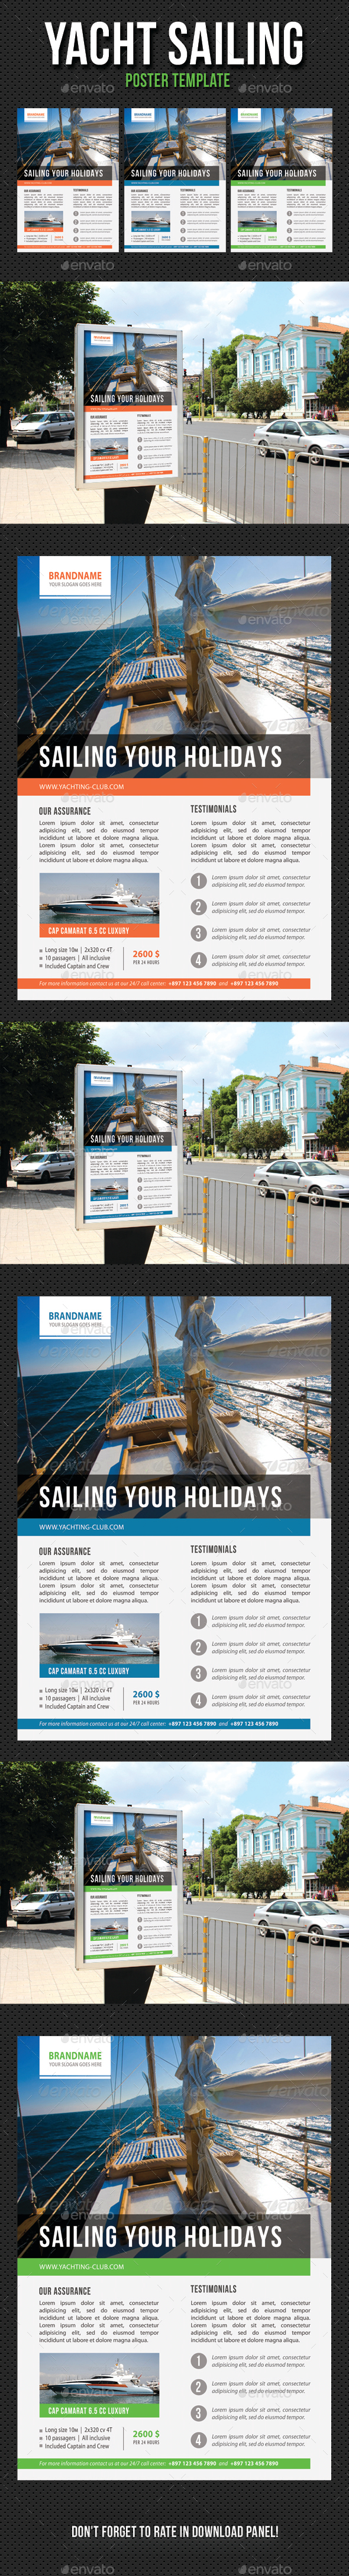 Yacht Sailing Poster Template V07 - Signage Print Templates